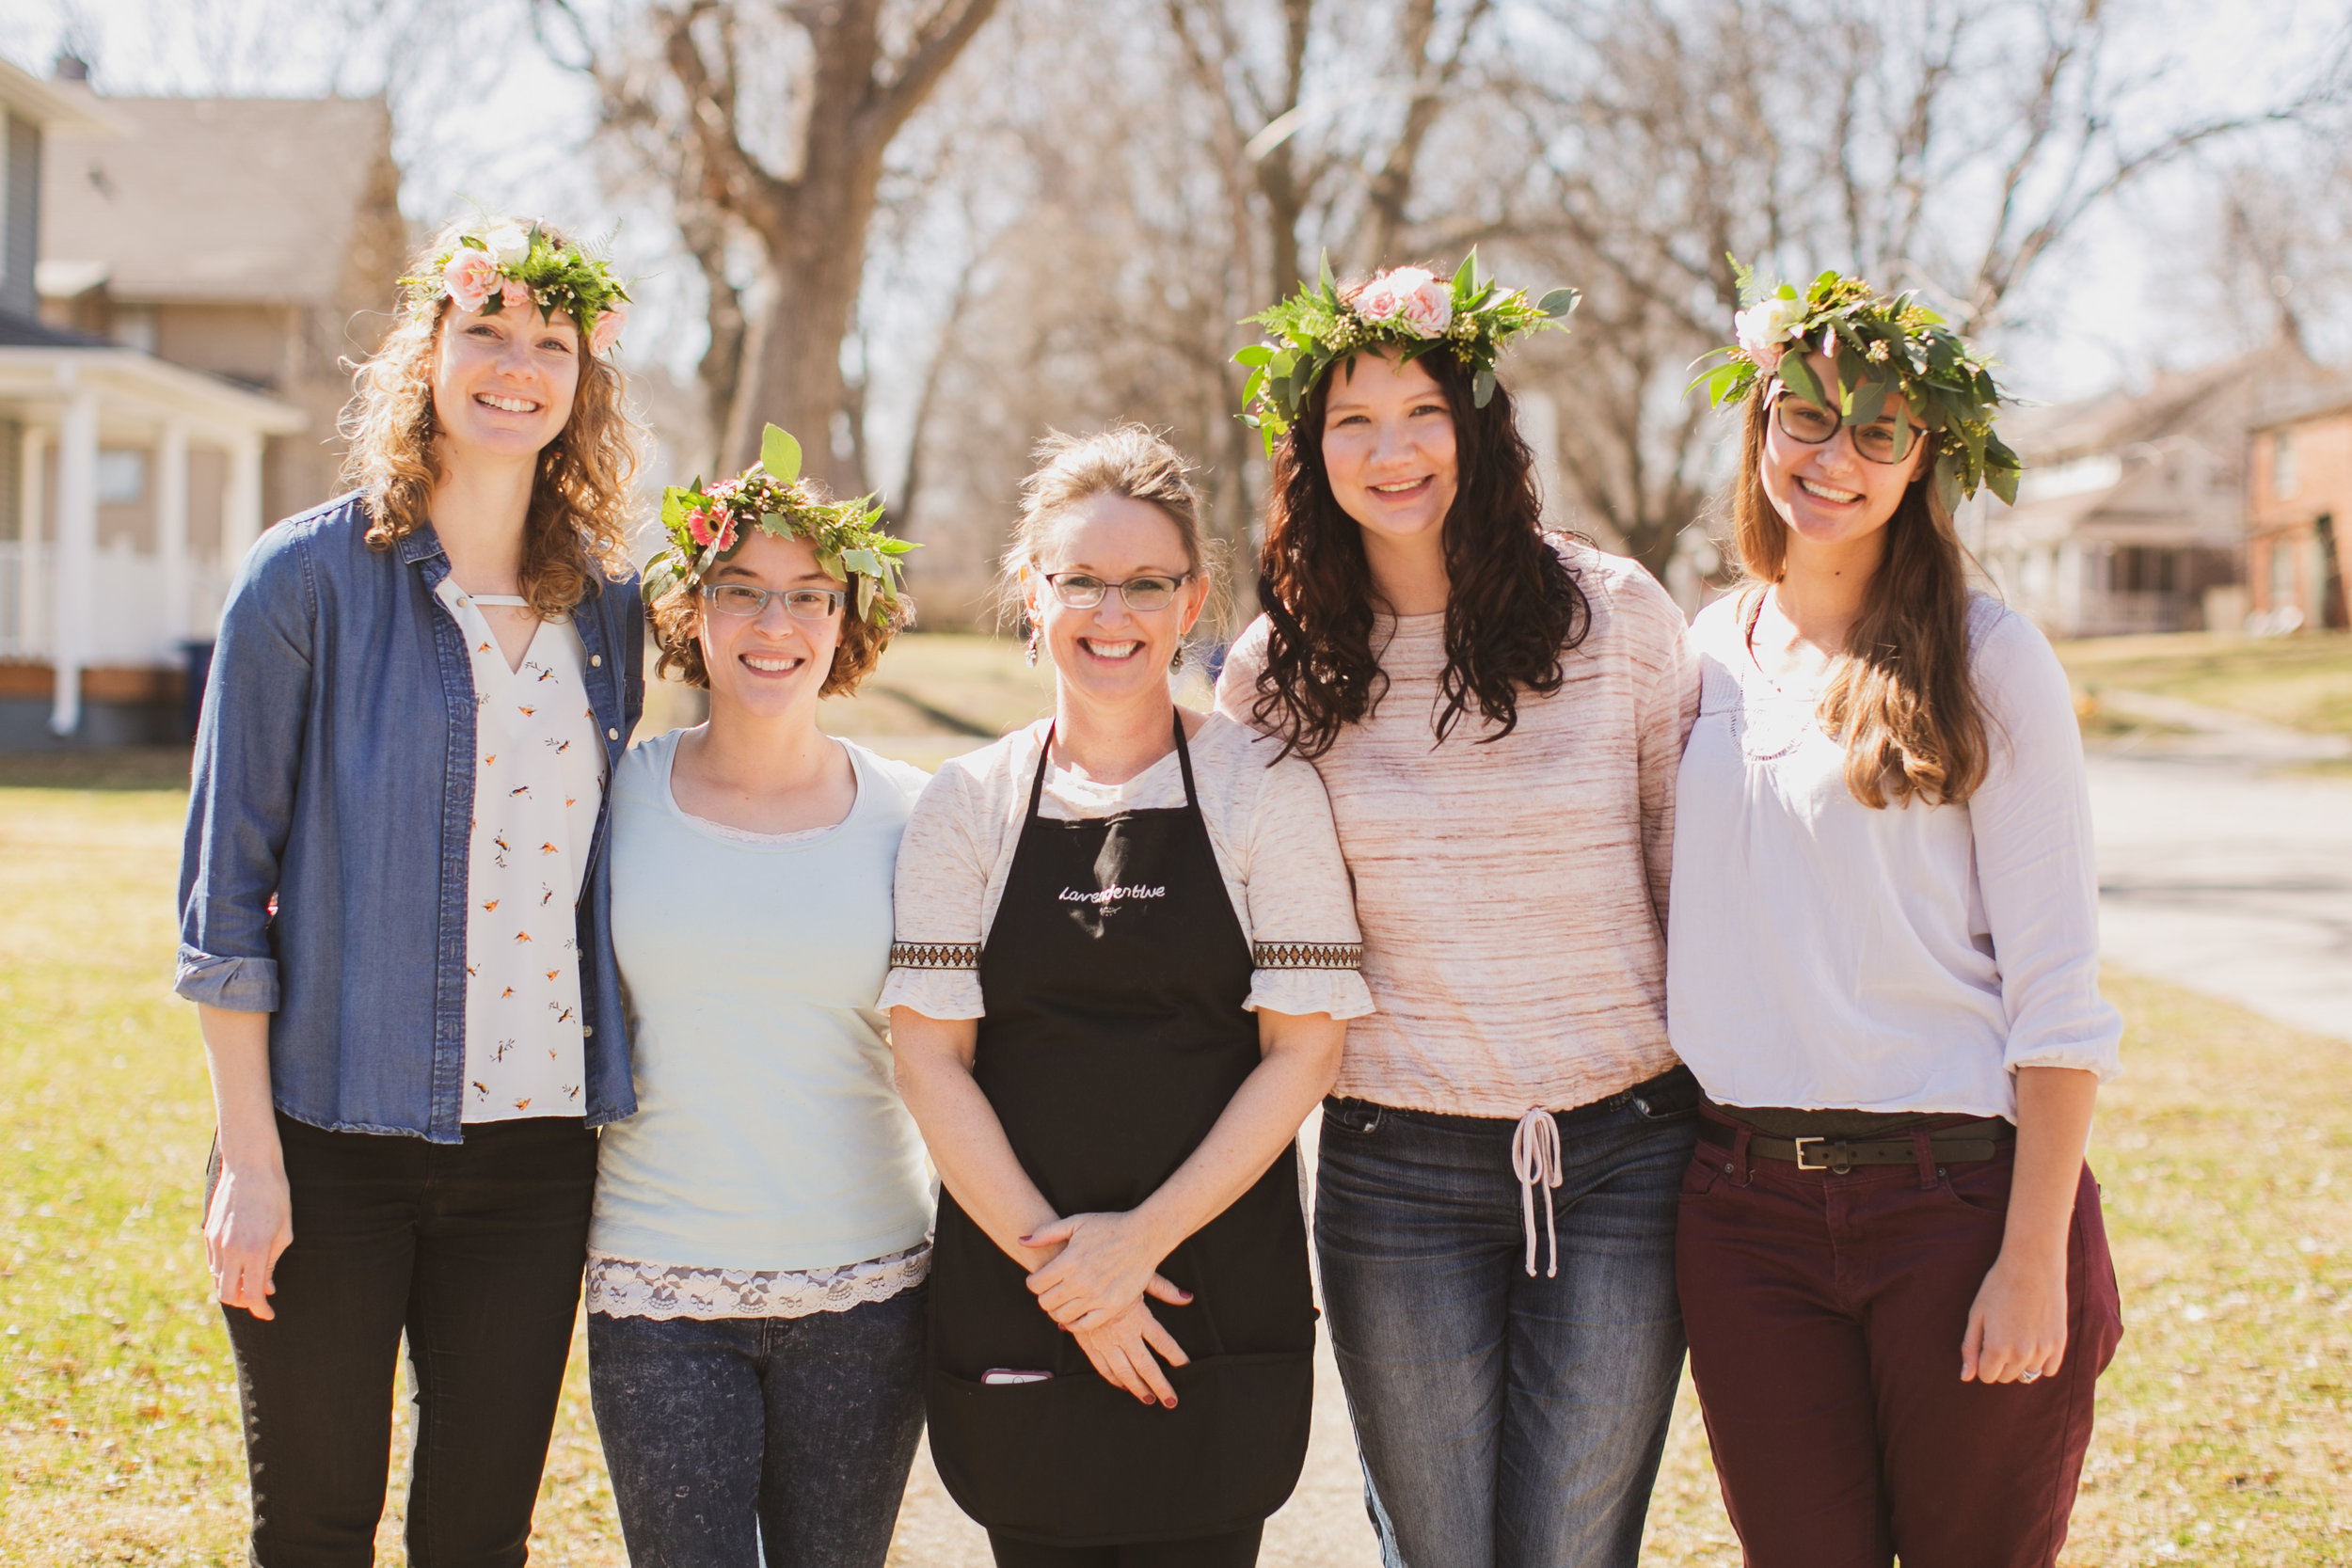 lynda and girls from flower crown workshop